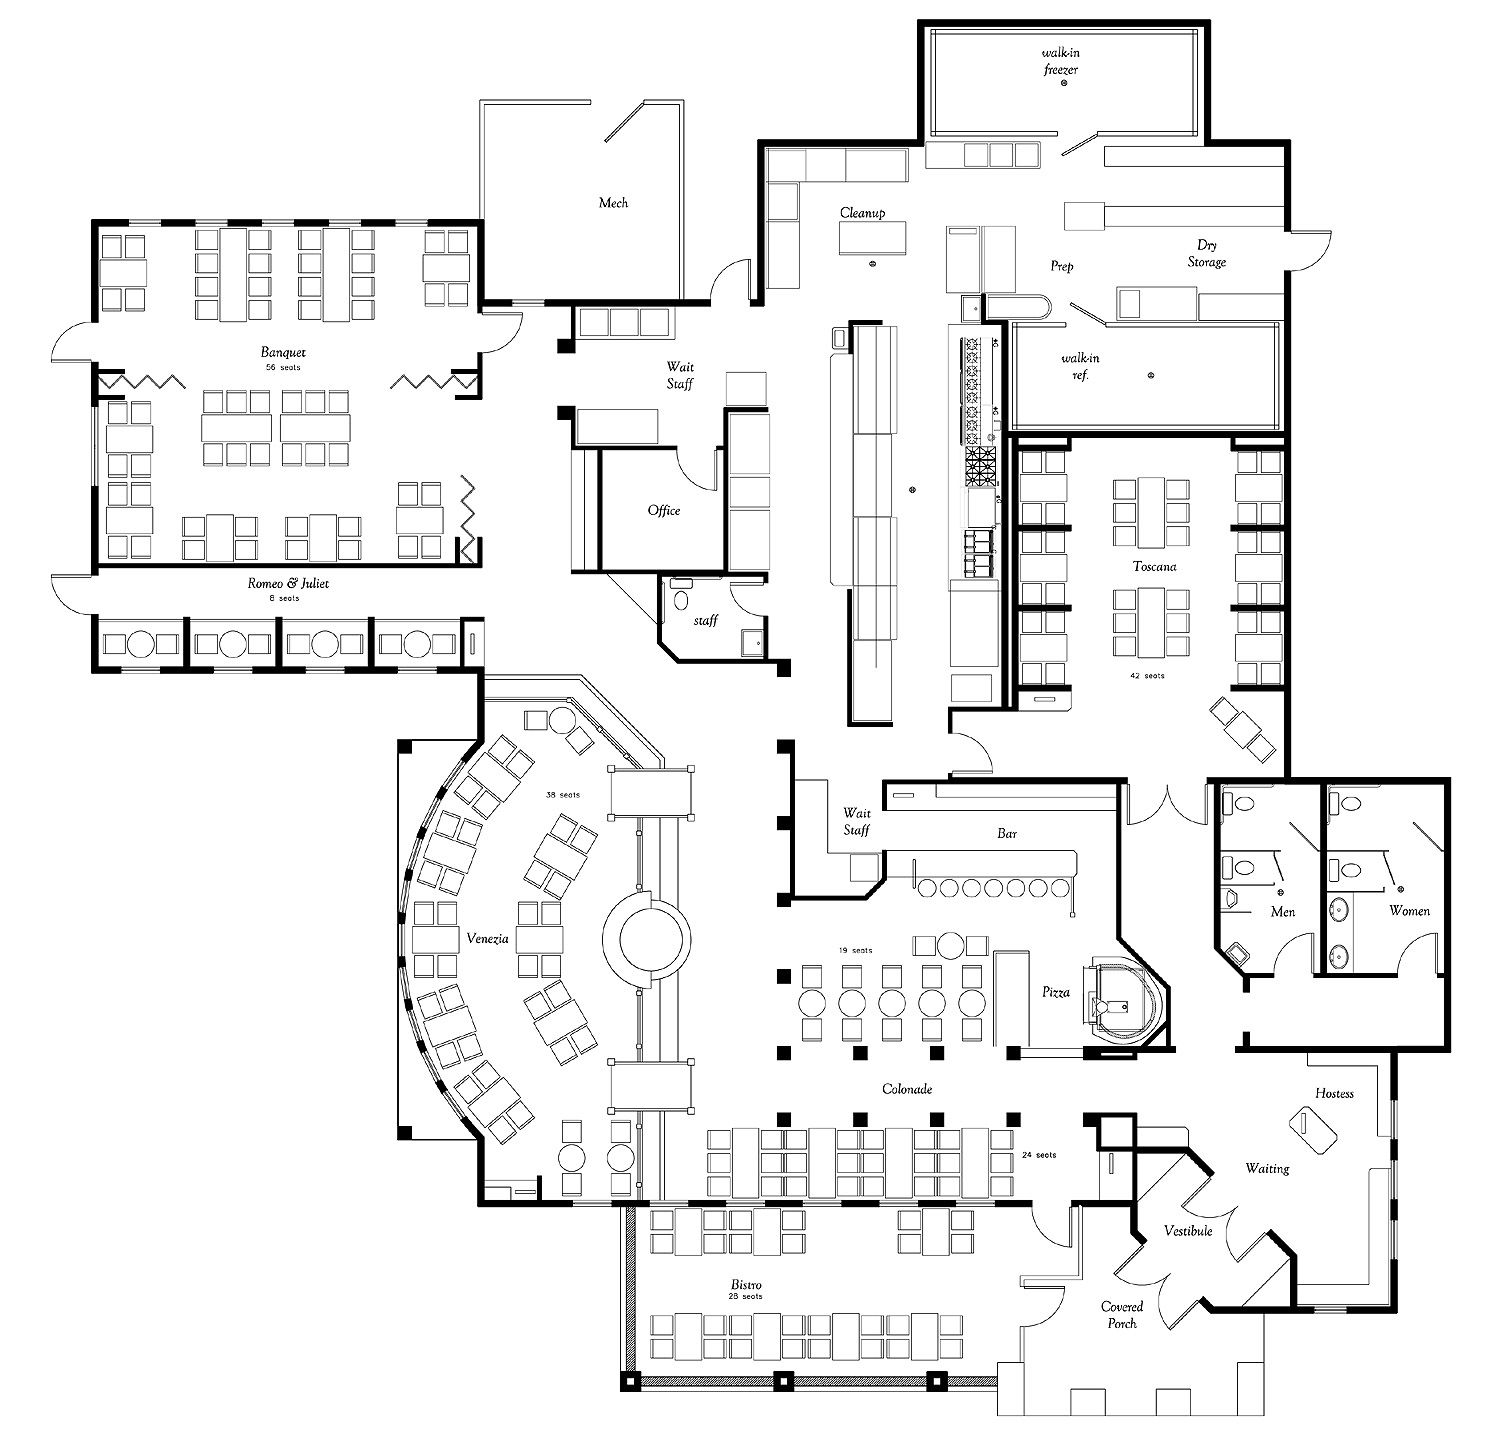 Pin By Shruti Sharma On Loft 13 Design Restaurant Floor Plan Restaurant Plan Restaurant Flooring